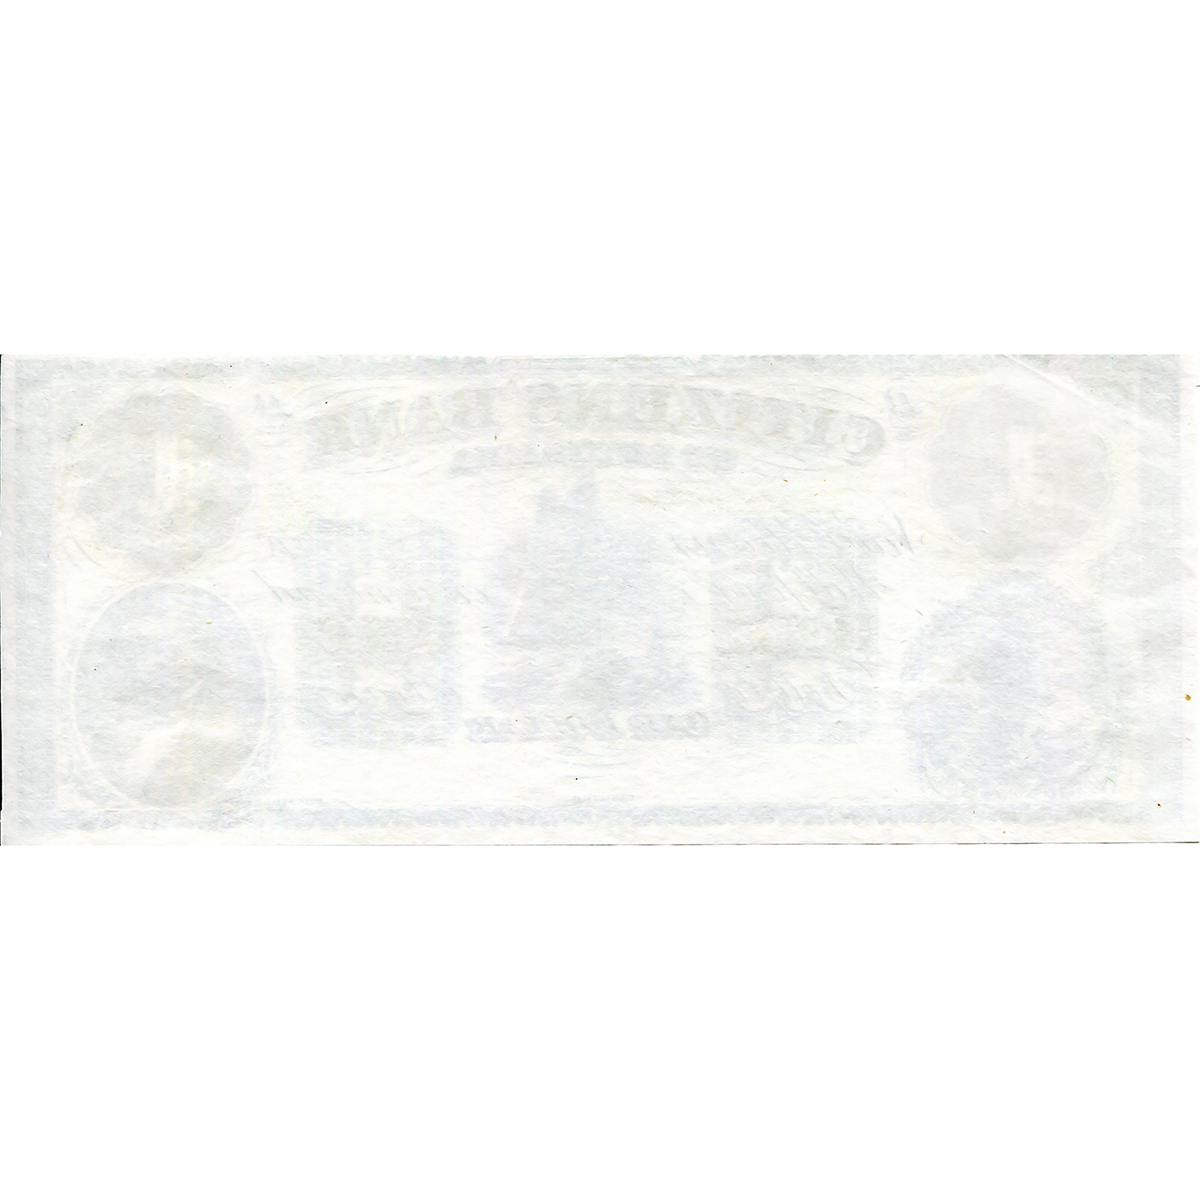 Louisiana New Orleans 1860s $1 Remainder Citizens' Bank of